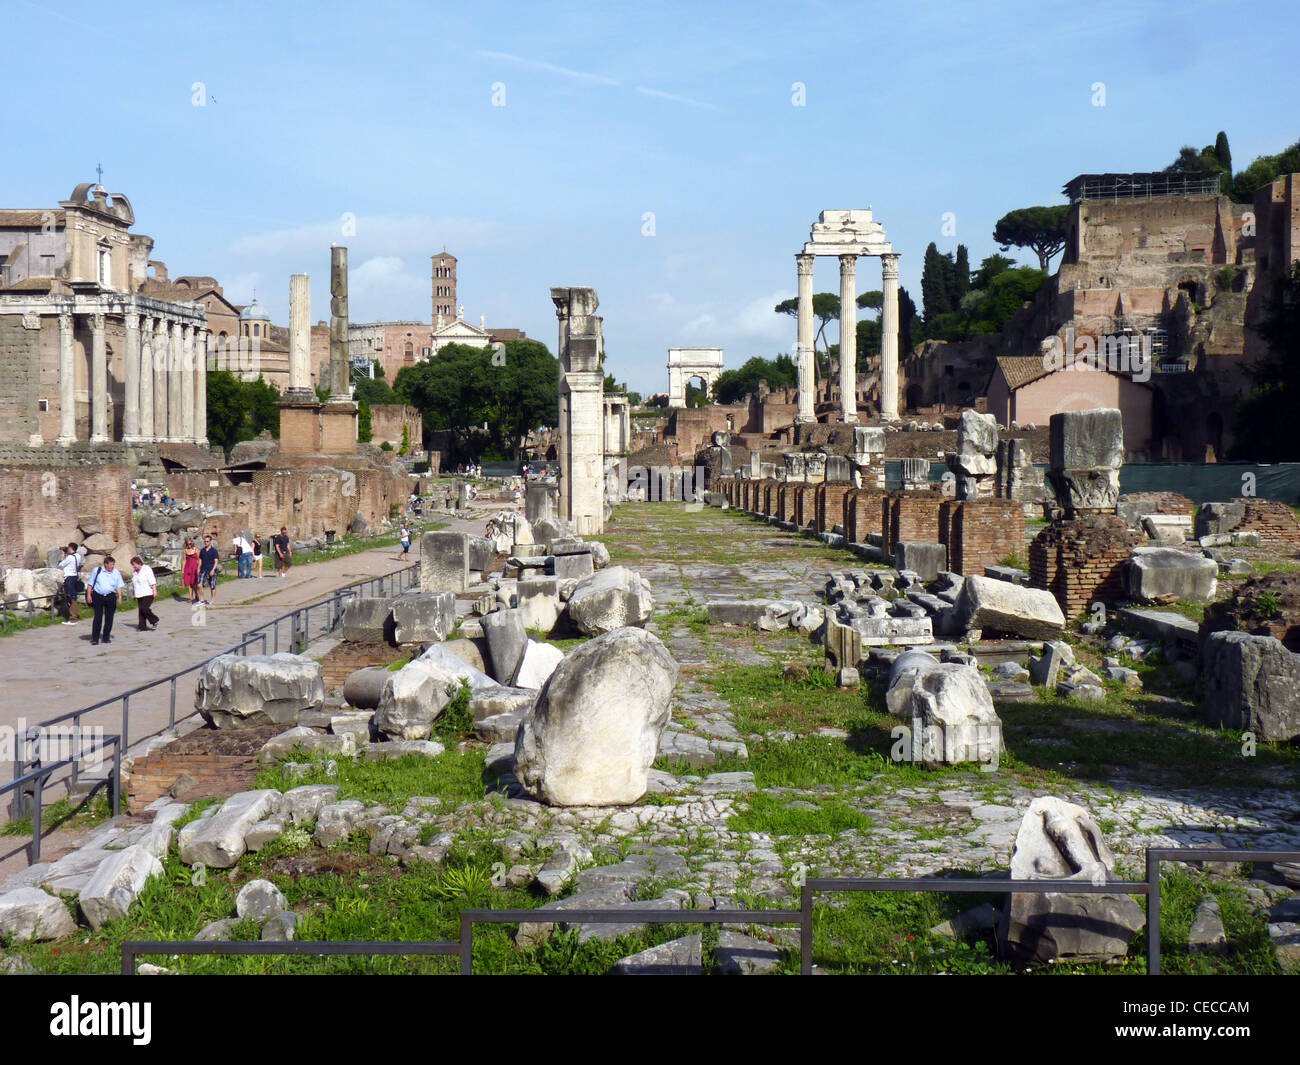 Temple of Castor and Pollux in the ruins of the ancient roman forum romanum, Rome, Italy - Stock Image